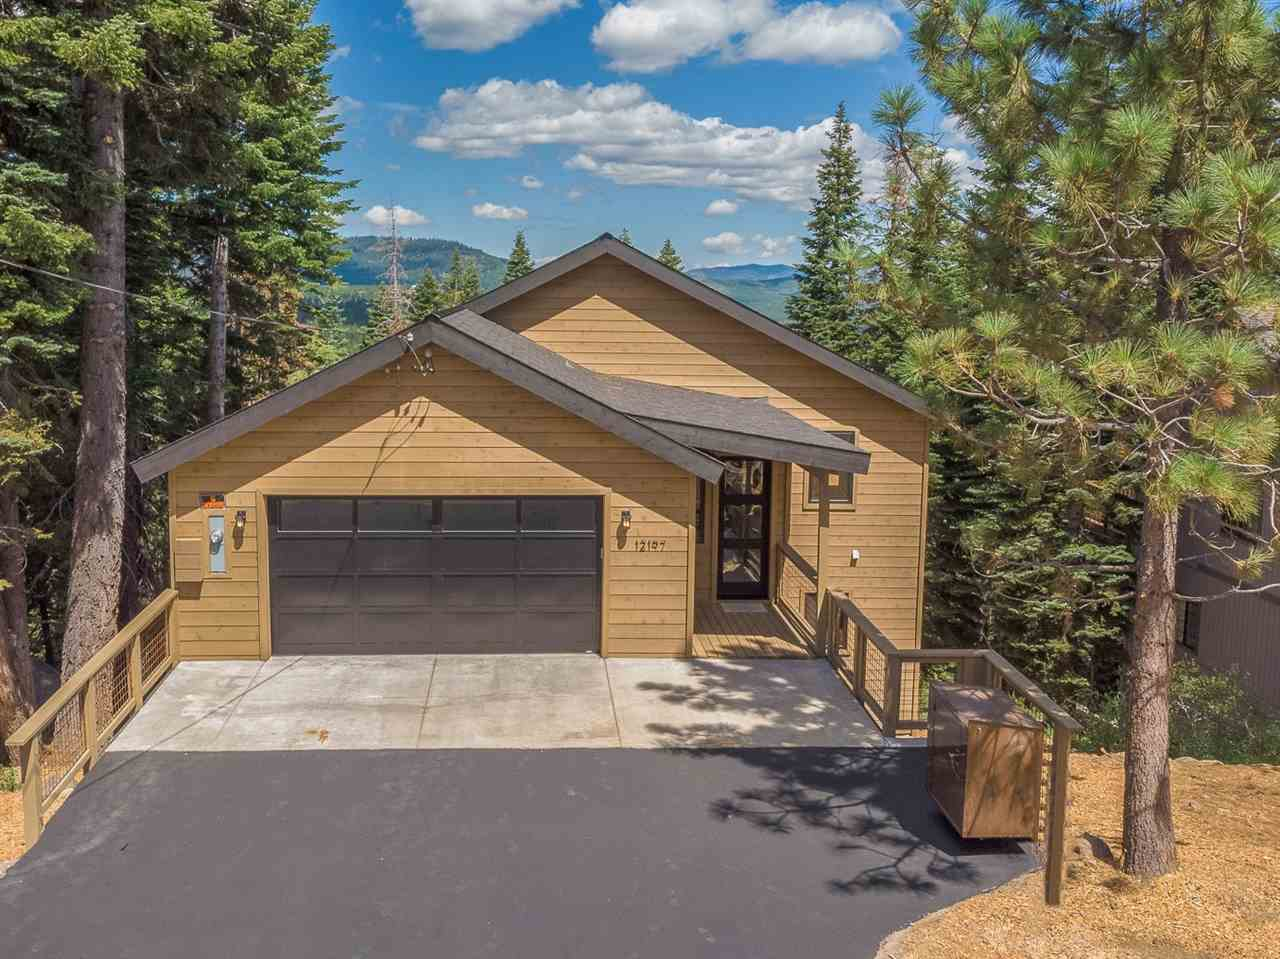 Image for 12197 Skislope Way, Truckee, CA 96161